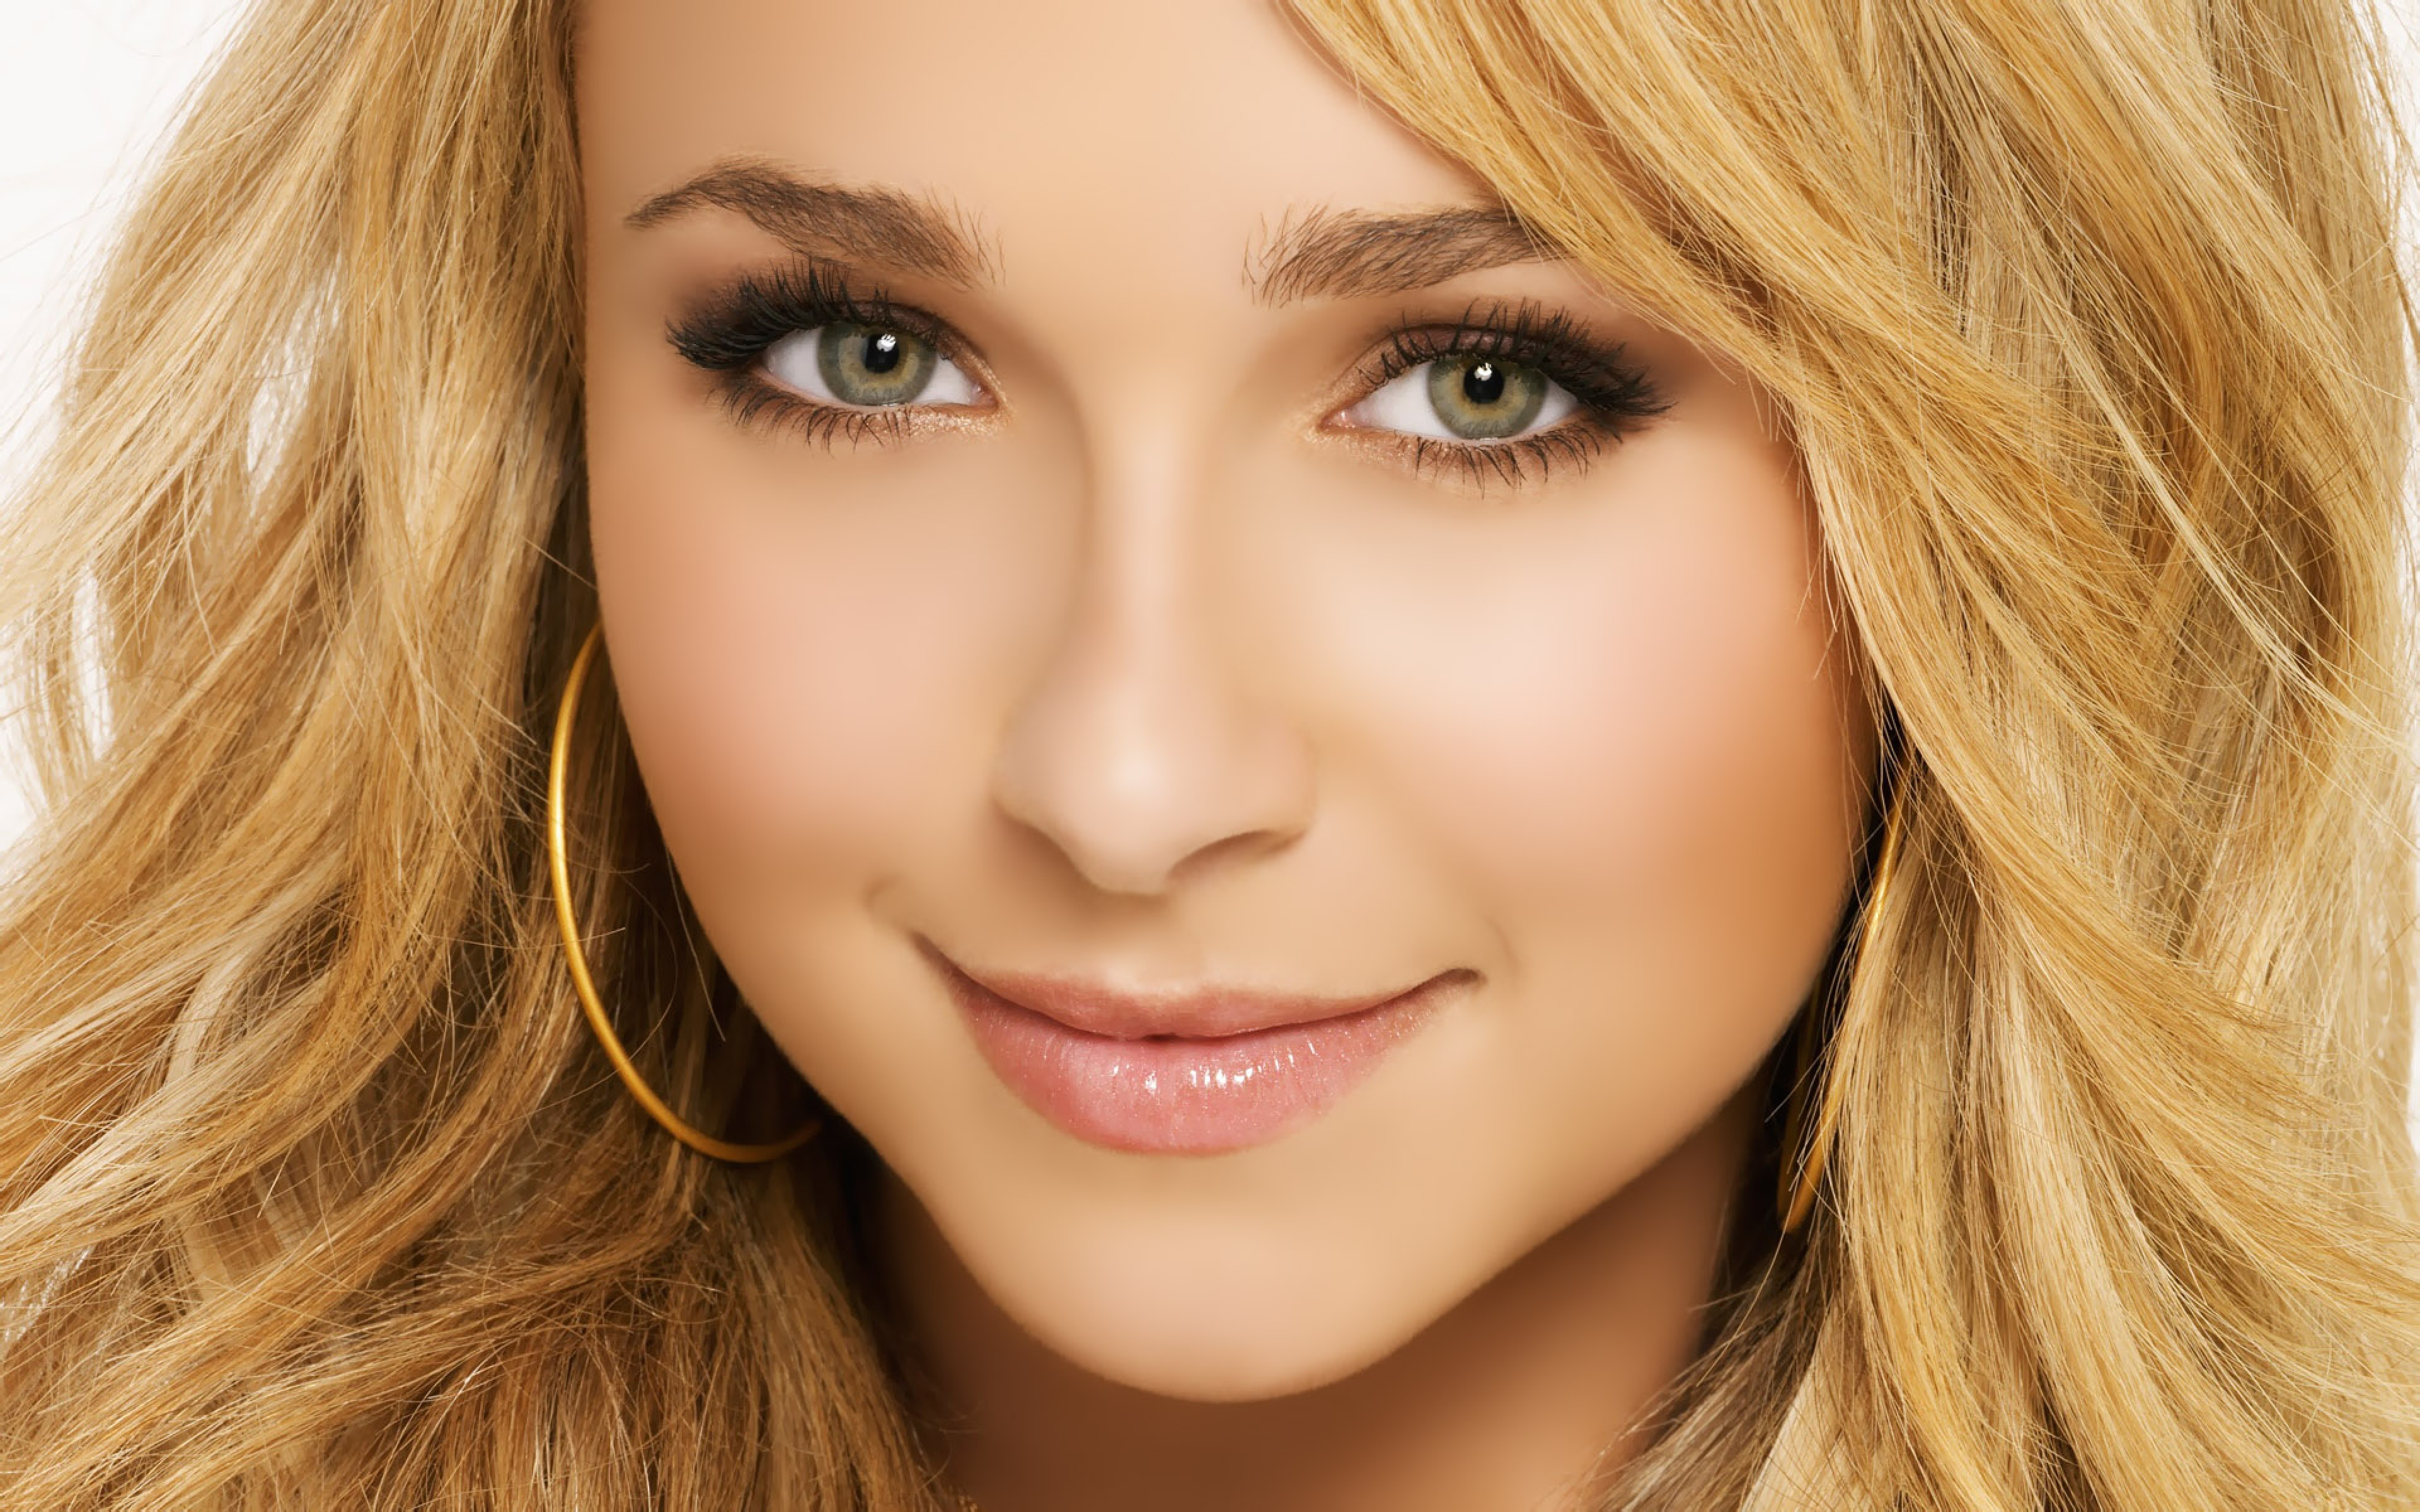 hayden panettiere actrees blonde 4000x3000